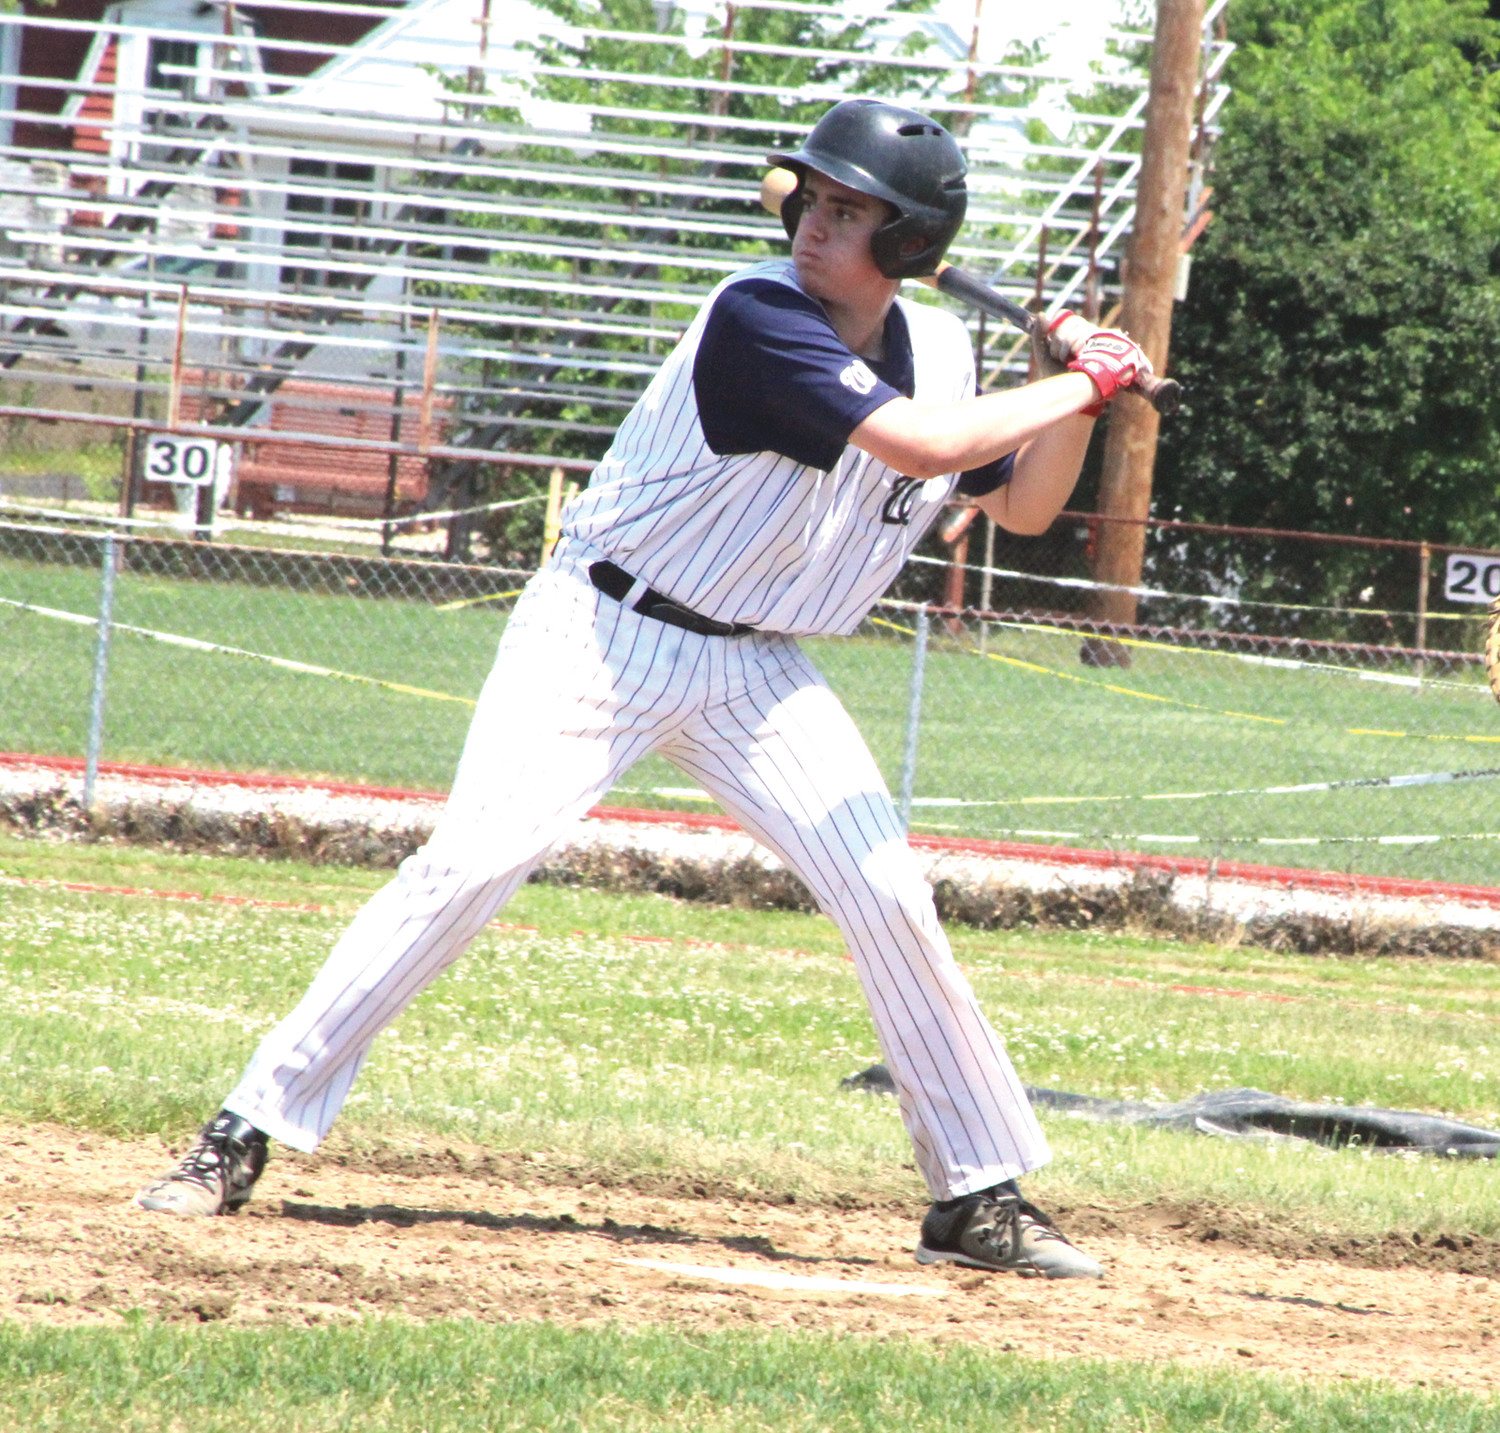 AT THE DISH: Warwick PAL's Will Pariseau at the plate against Cranston.